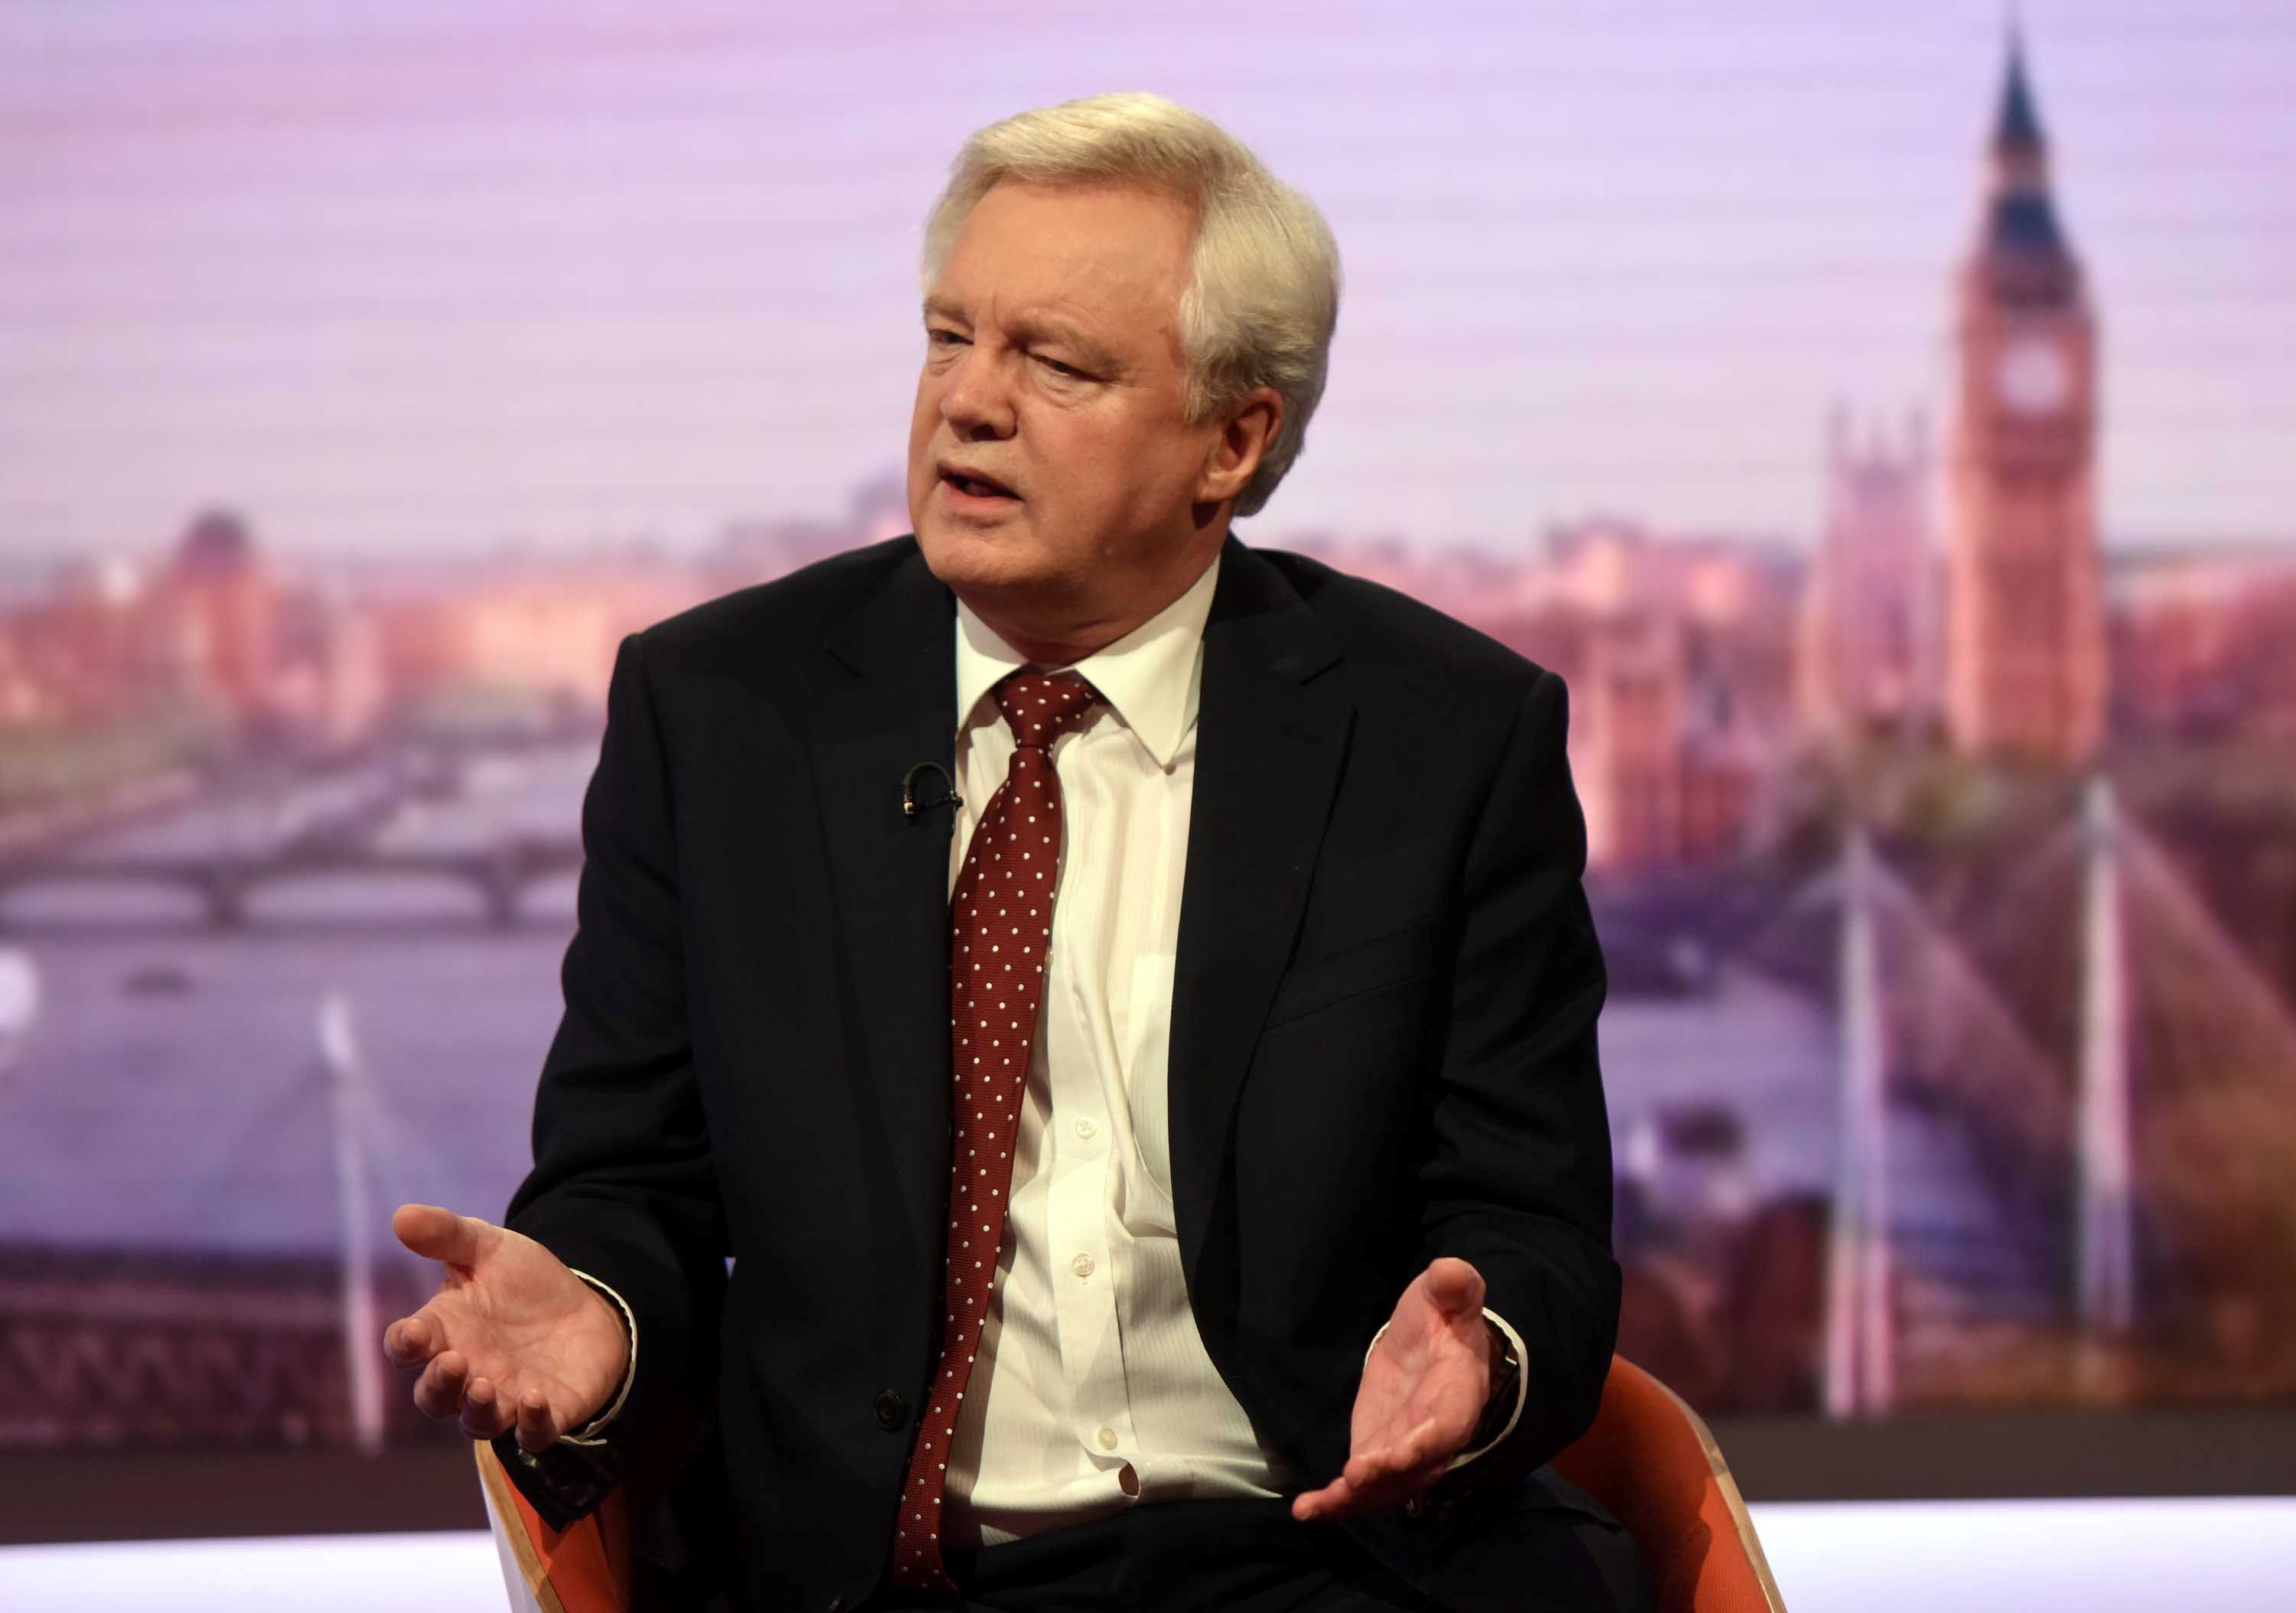 Sunday Shows Round-Up: Vote Leave On The Ropes, Michael Sheen And David Davis' Sick